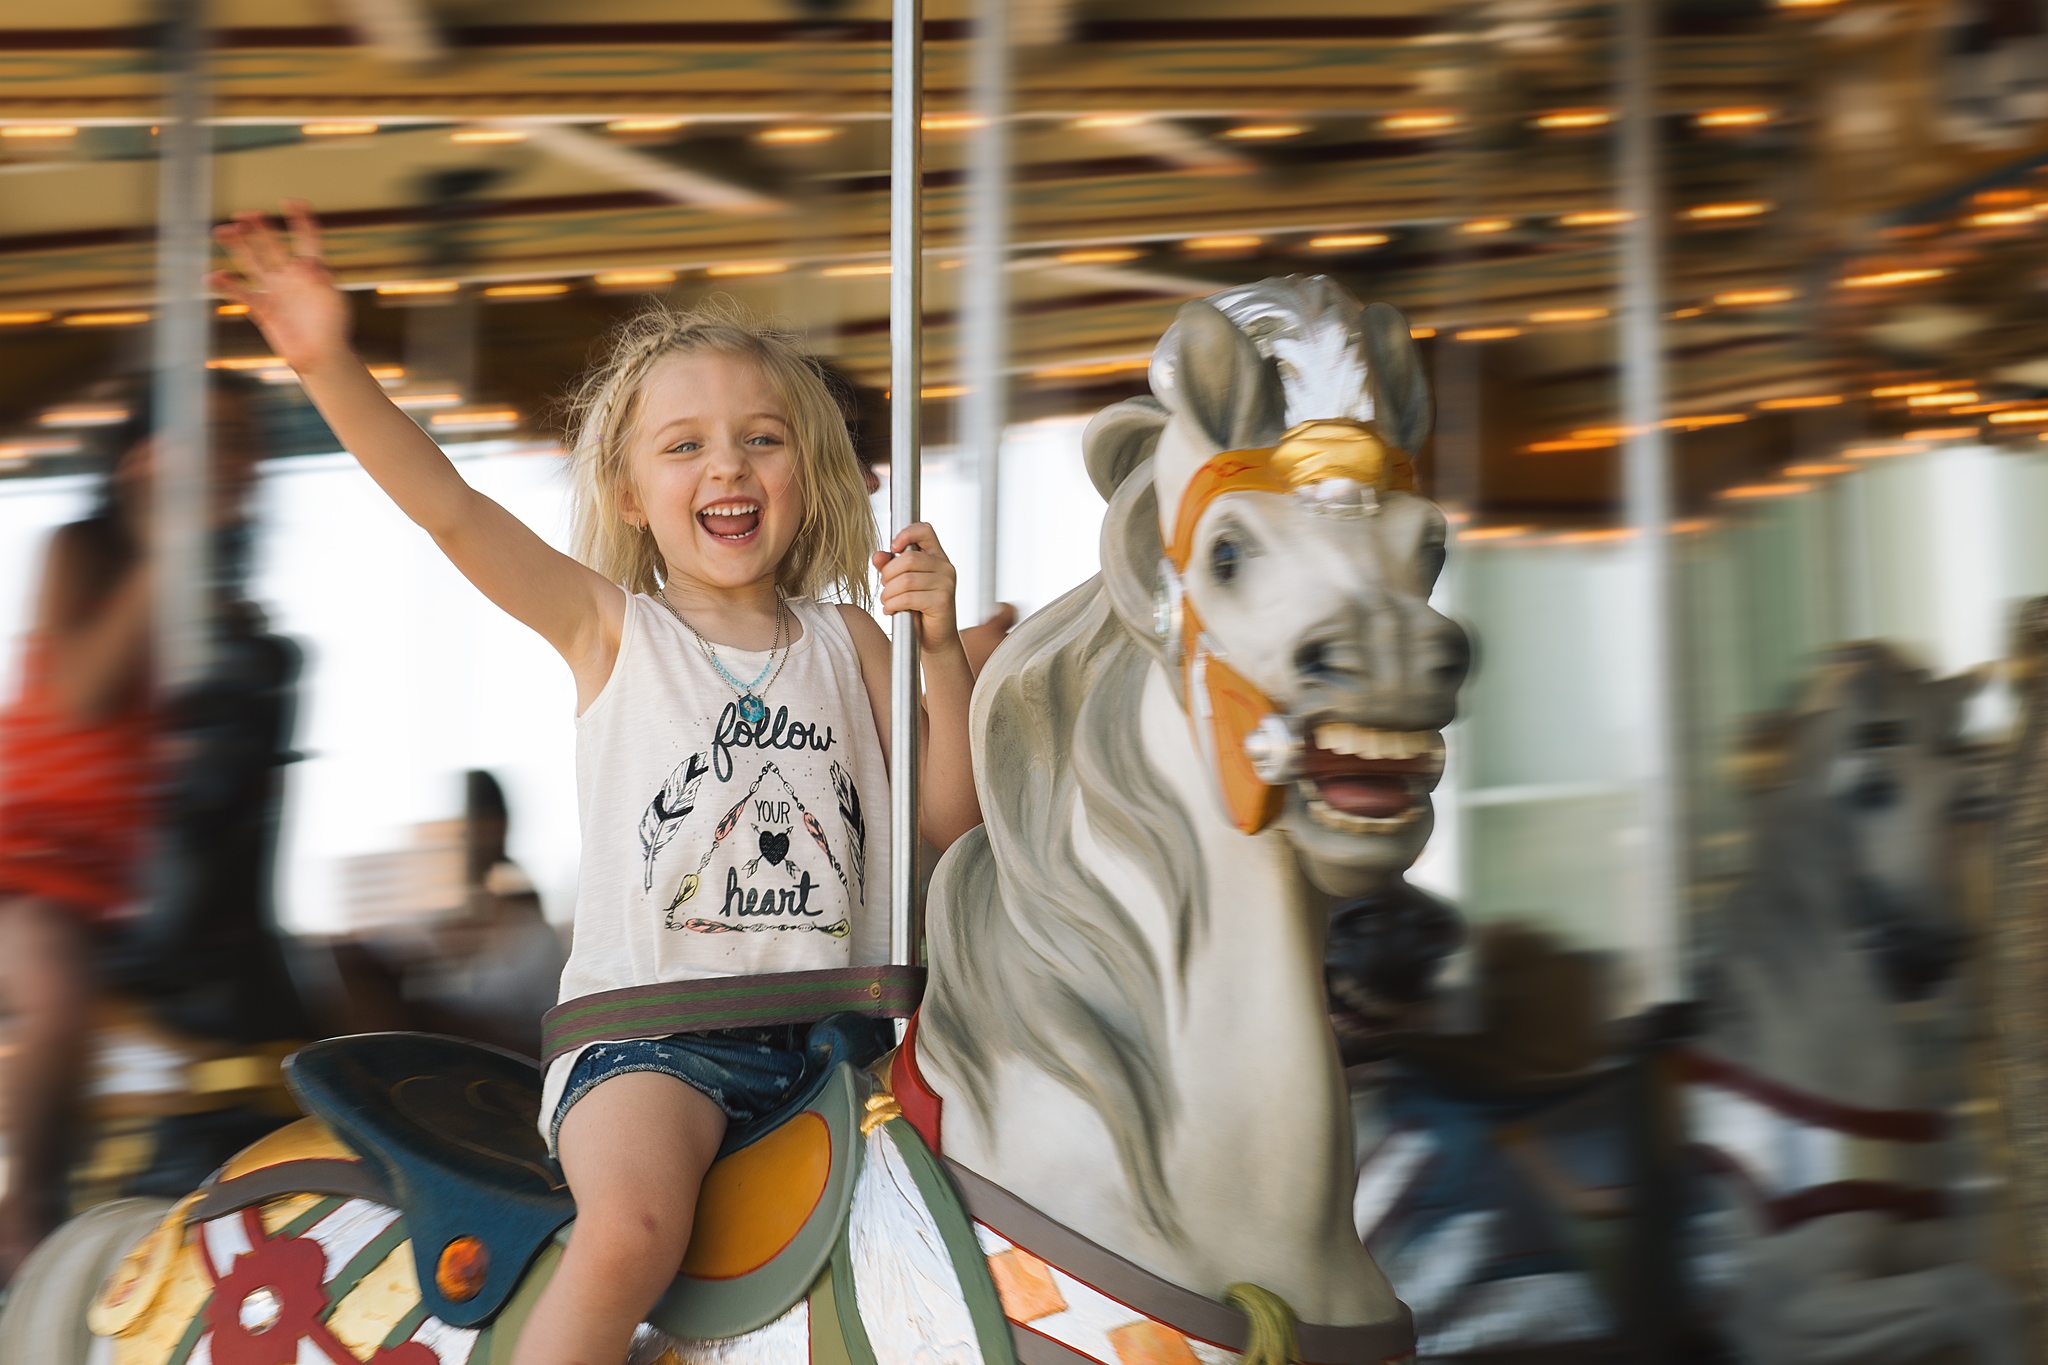 hello-olivia-photography-long-island-family-child-kids-lifestyle-portrait-photographer-yo-dumbo-red-hook-brooklyn-panning-janes-carousel